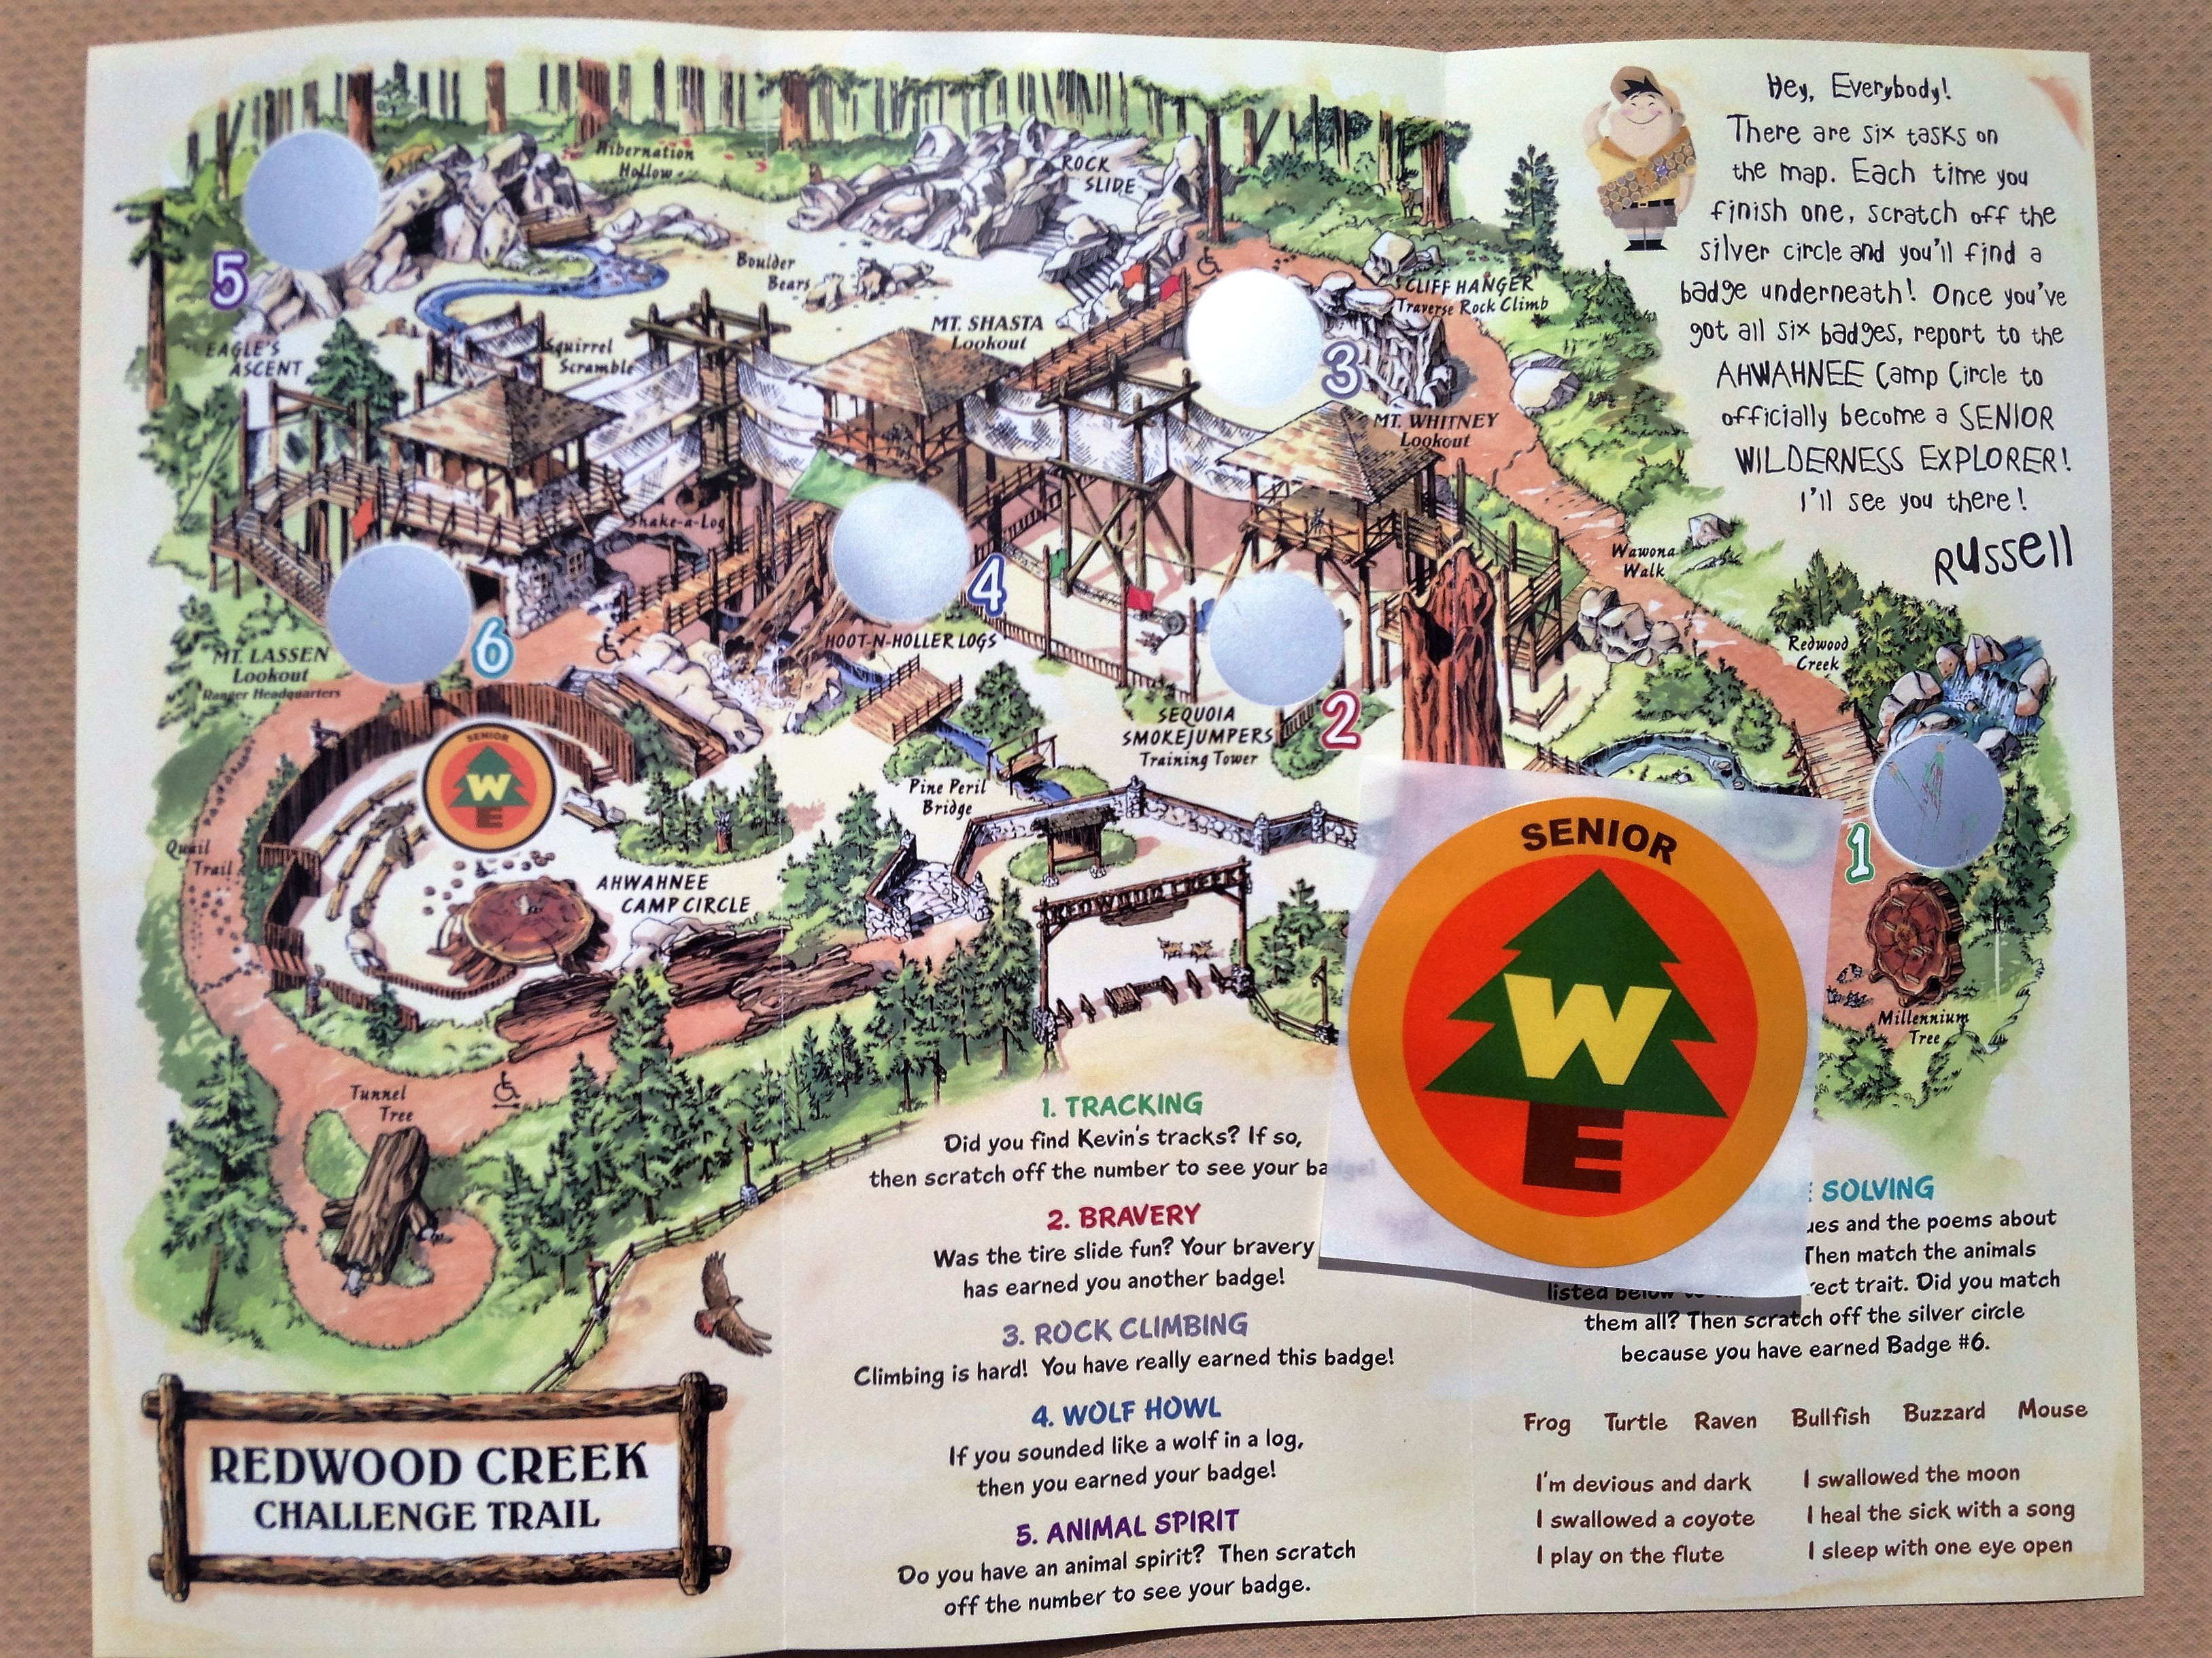 Mouseplanet - Redwood Creek Challenge Trail: The Adventure Awaits by on